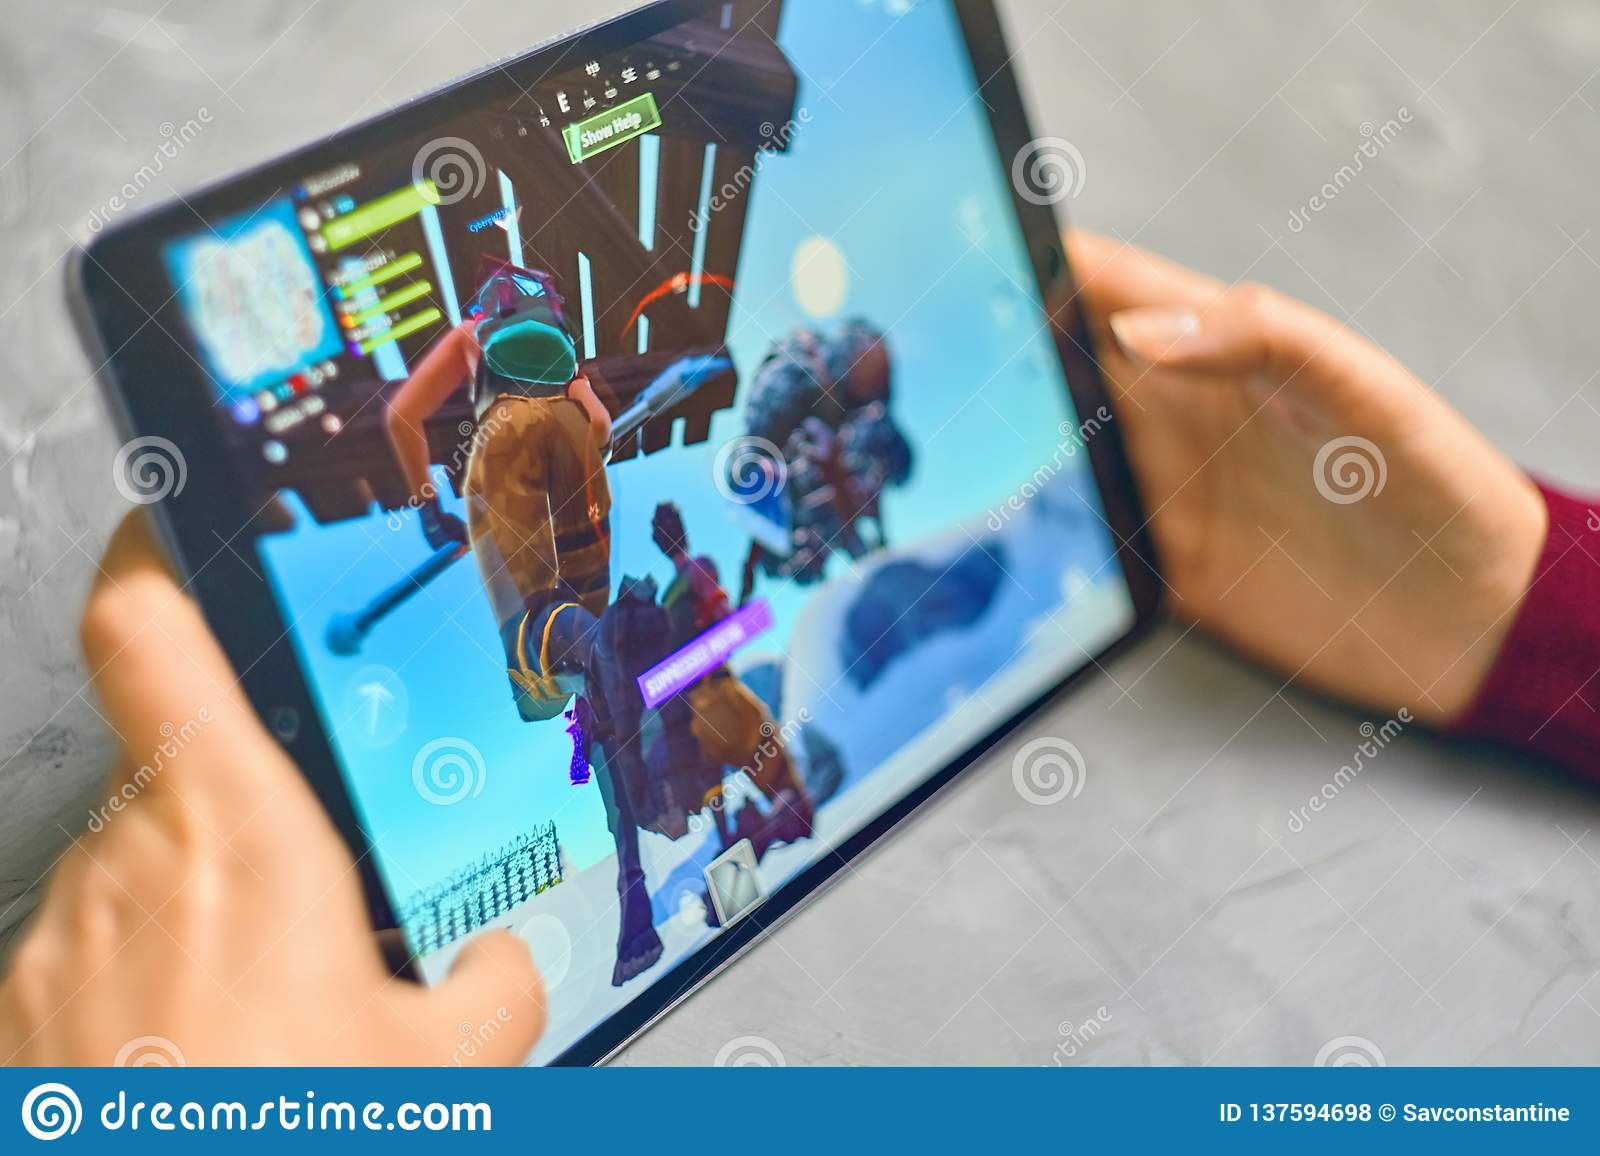 Fortnite Gameplay on ipad editorial stock photo  Image of